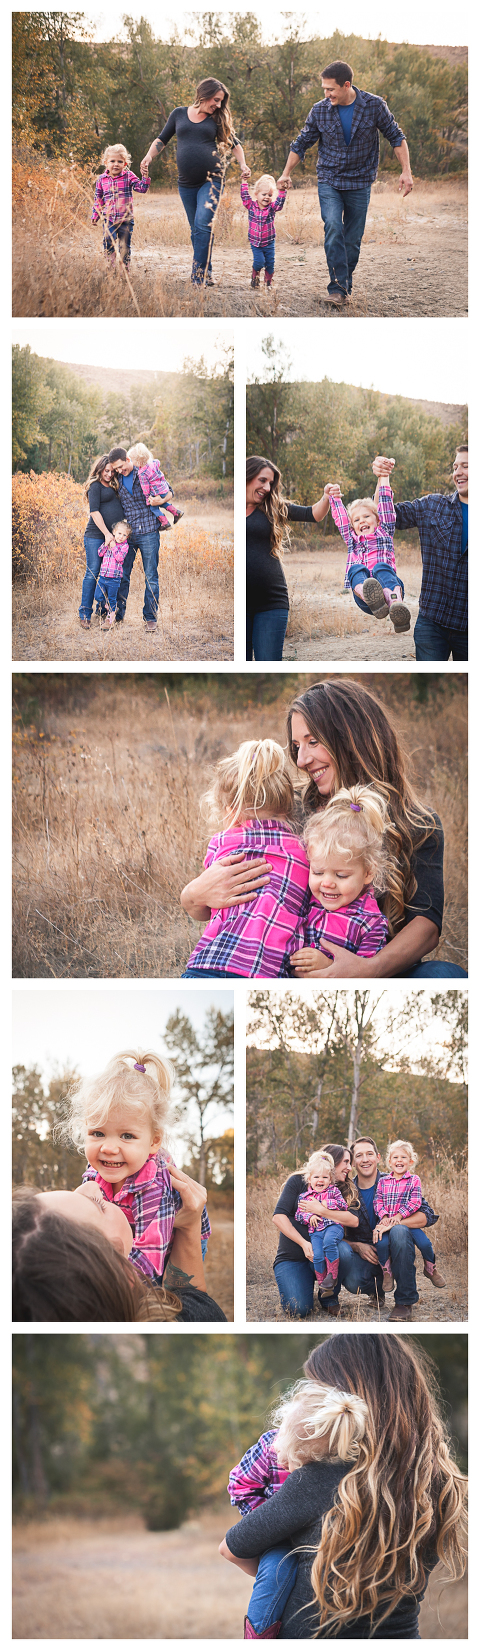 Taylor twins on the way, lifestyle maternity session by Hailey Haberman in Ellensburg WA